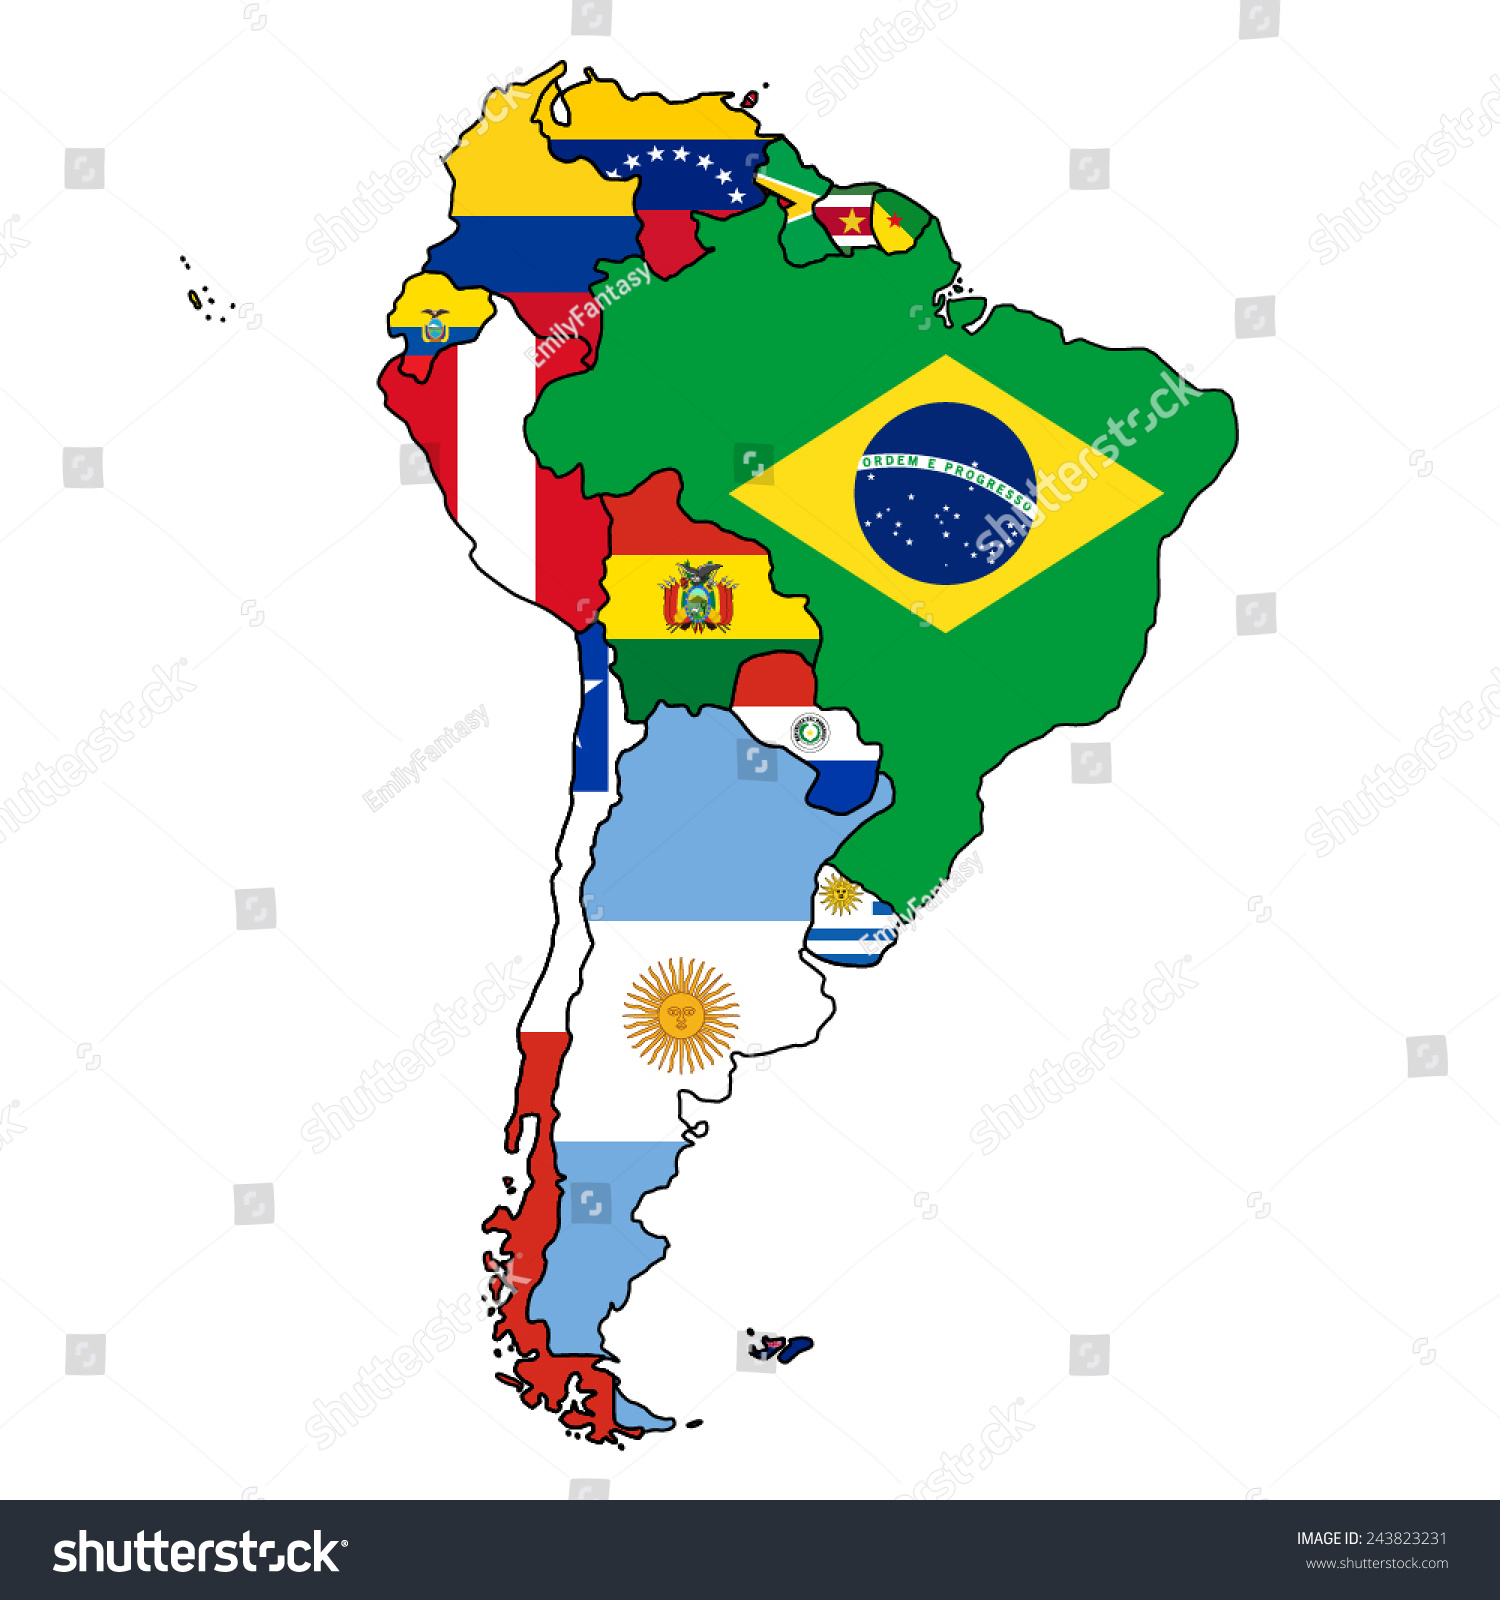 south america flag map all countries stock vector 243823231